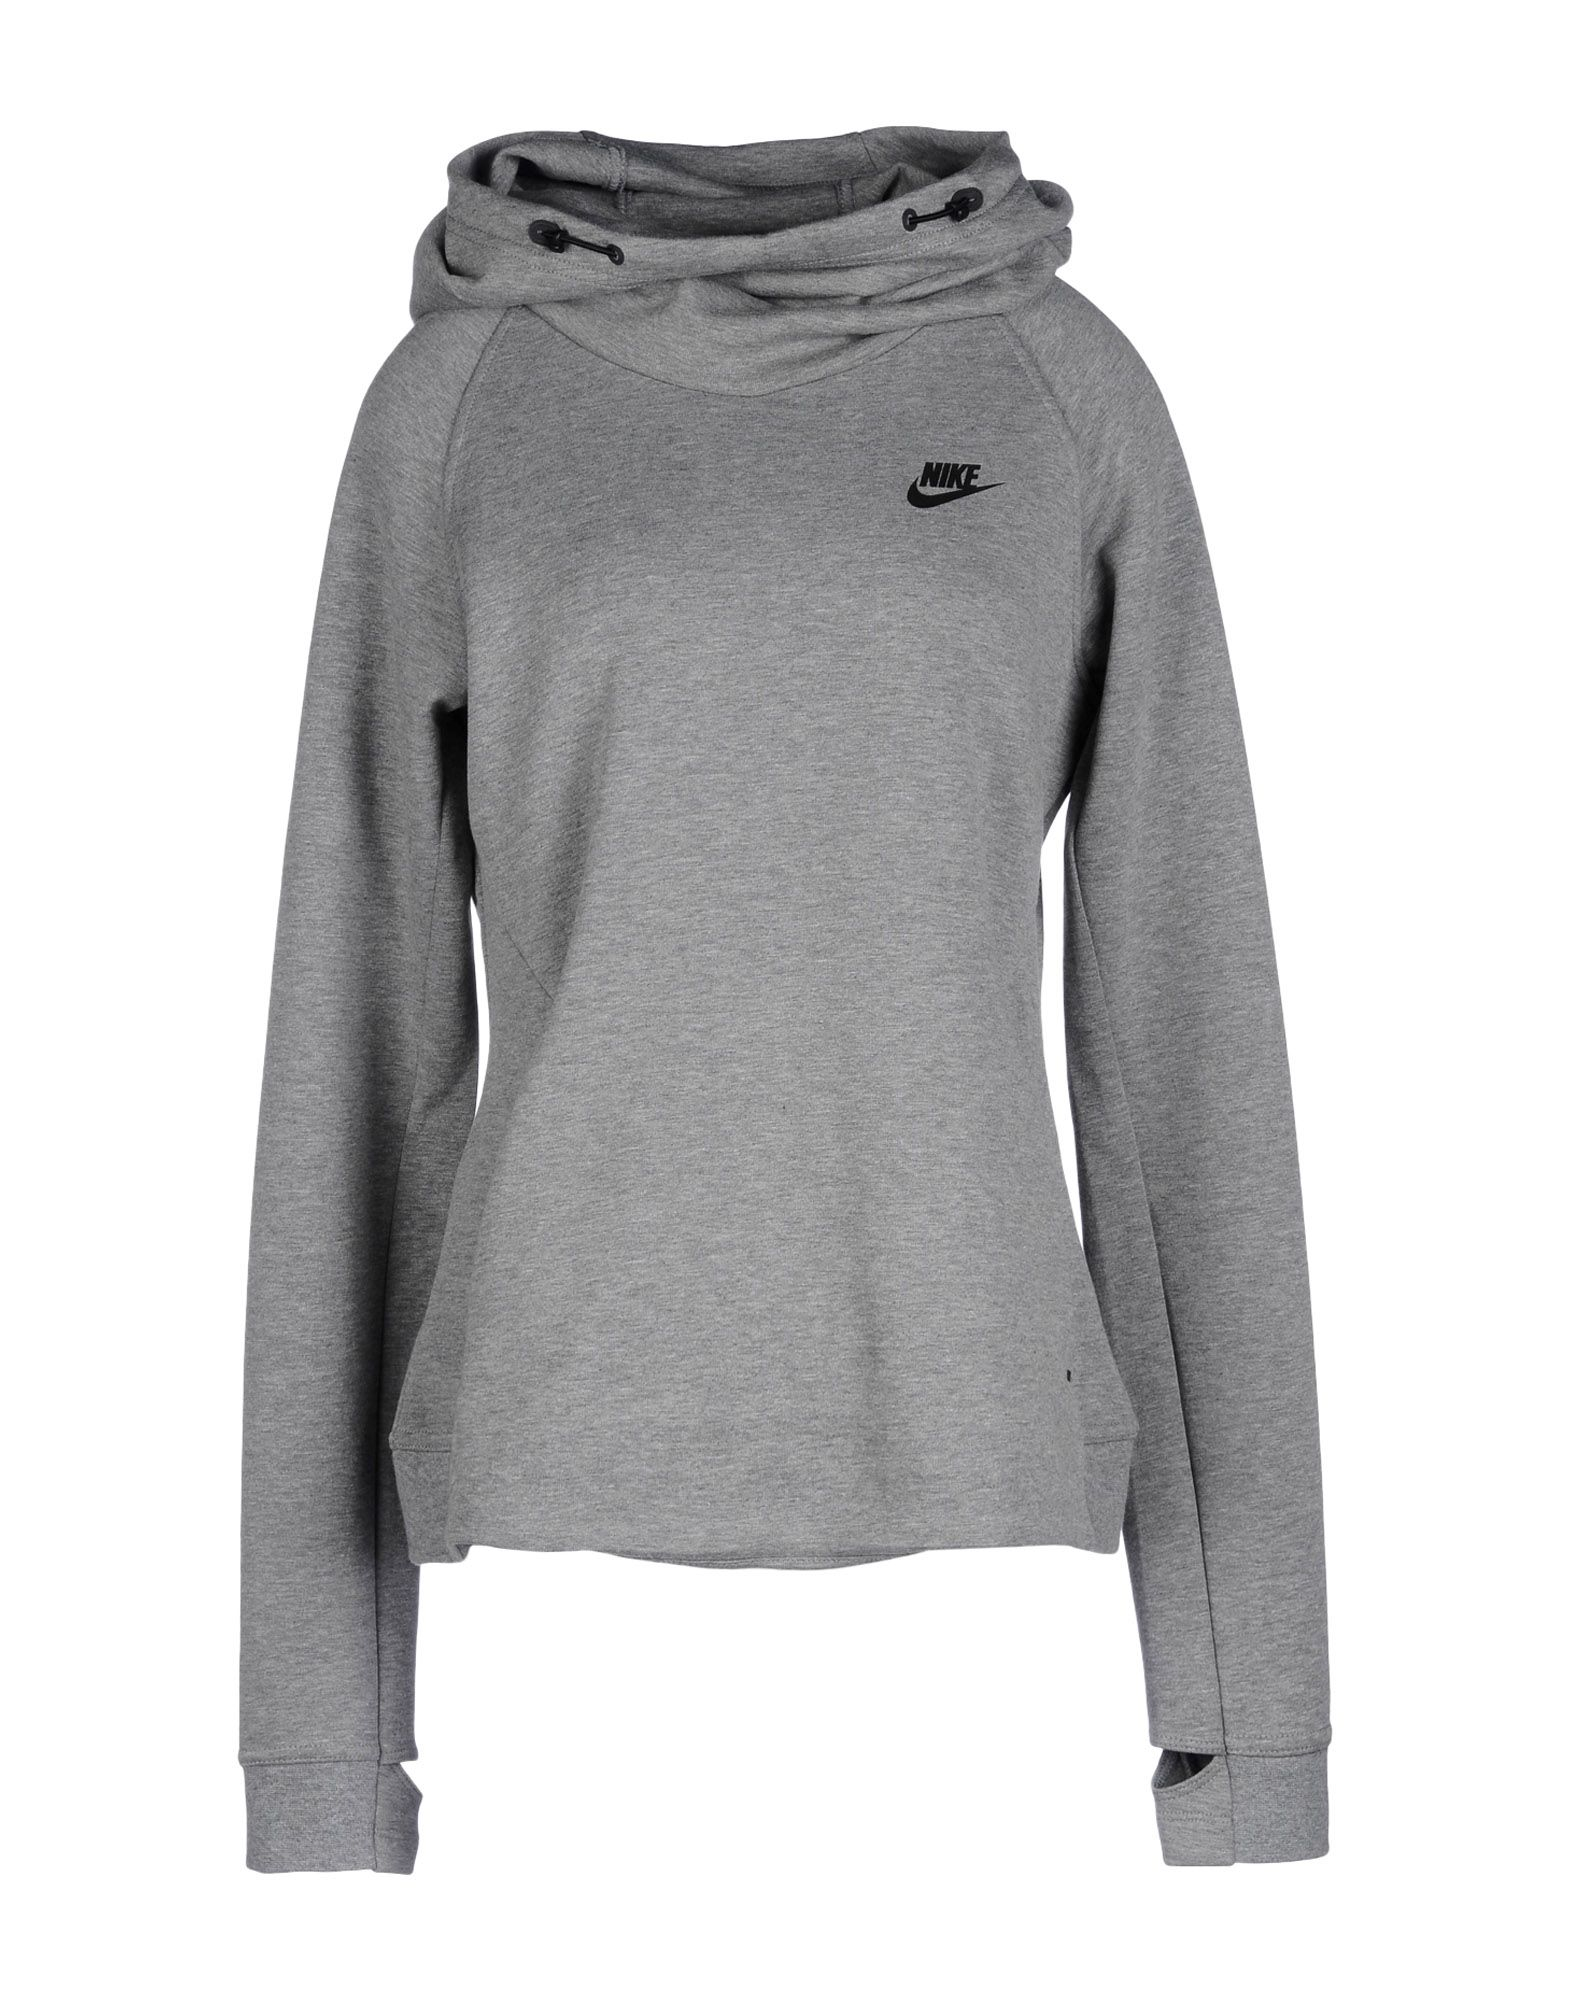 Find great deals on eBay for light grey hoodie. Shop with confidence.